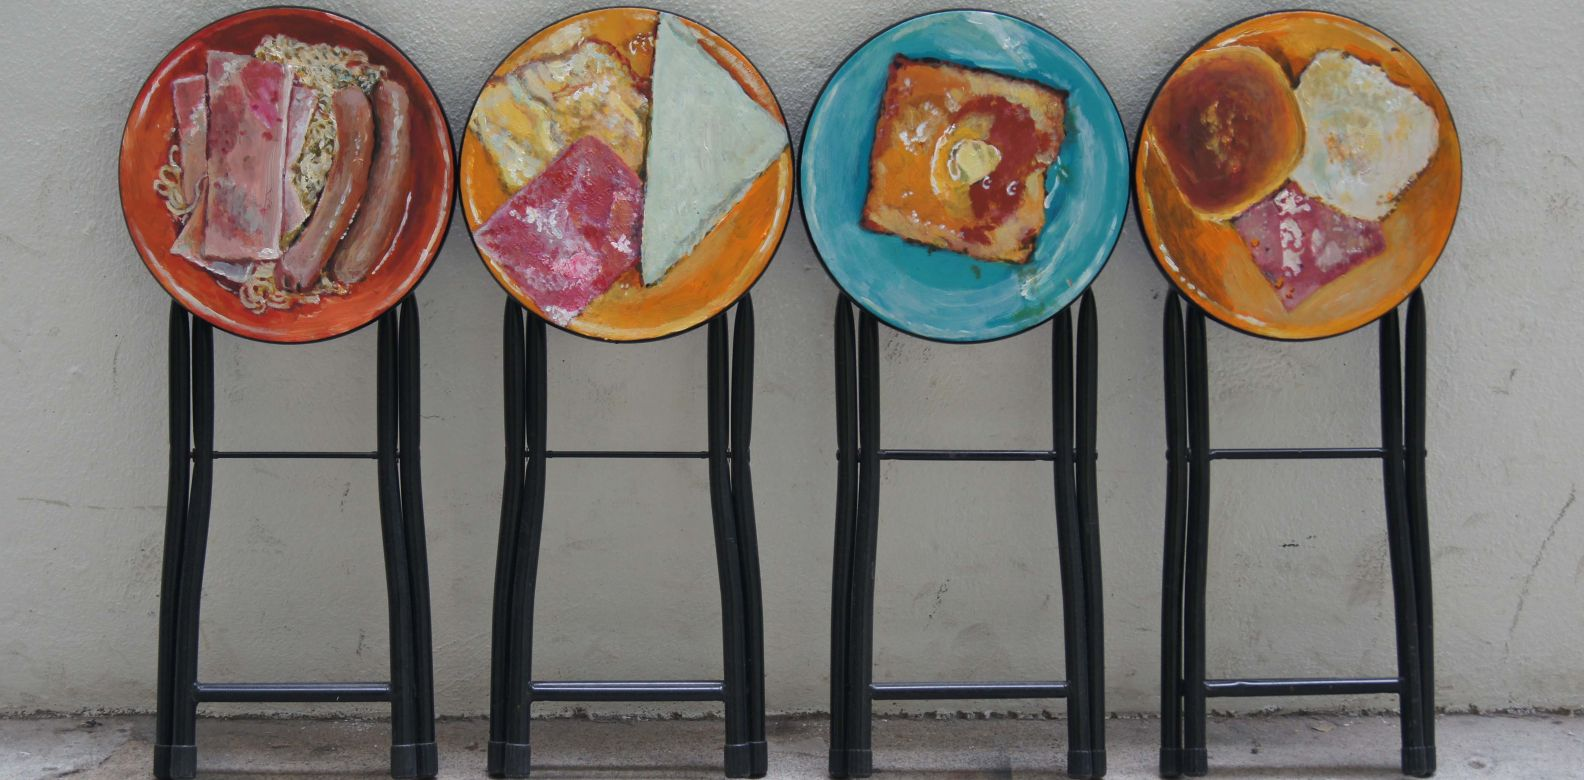 Breakfast (2016) by Douglas Young: Doulgas Young, the founder of G.O.D., regularly transforms seemingly mundane objects into thought-provoking works of art and design. With these painted stools, Young encourages us to appreciate the furniture we use everyday and the food that makes Hong Kong's cuisine unique. (Image: Courtesy of the artist)